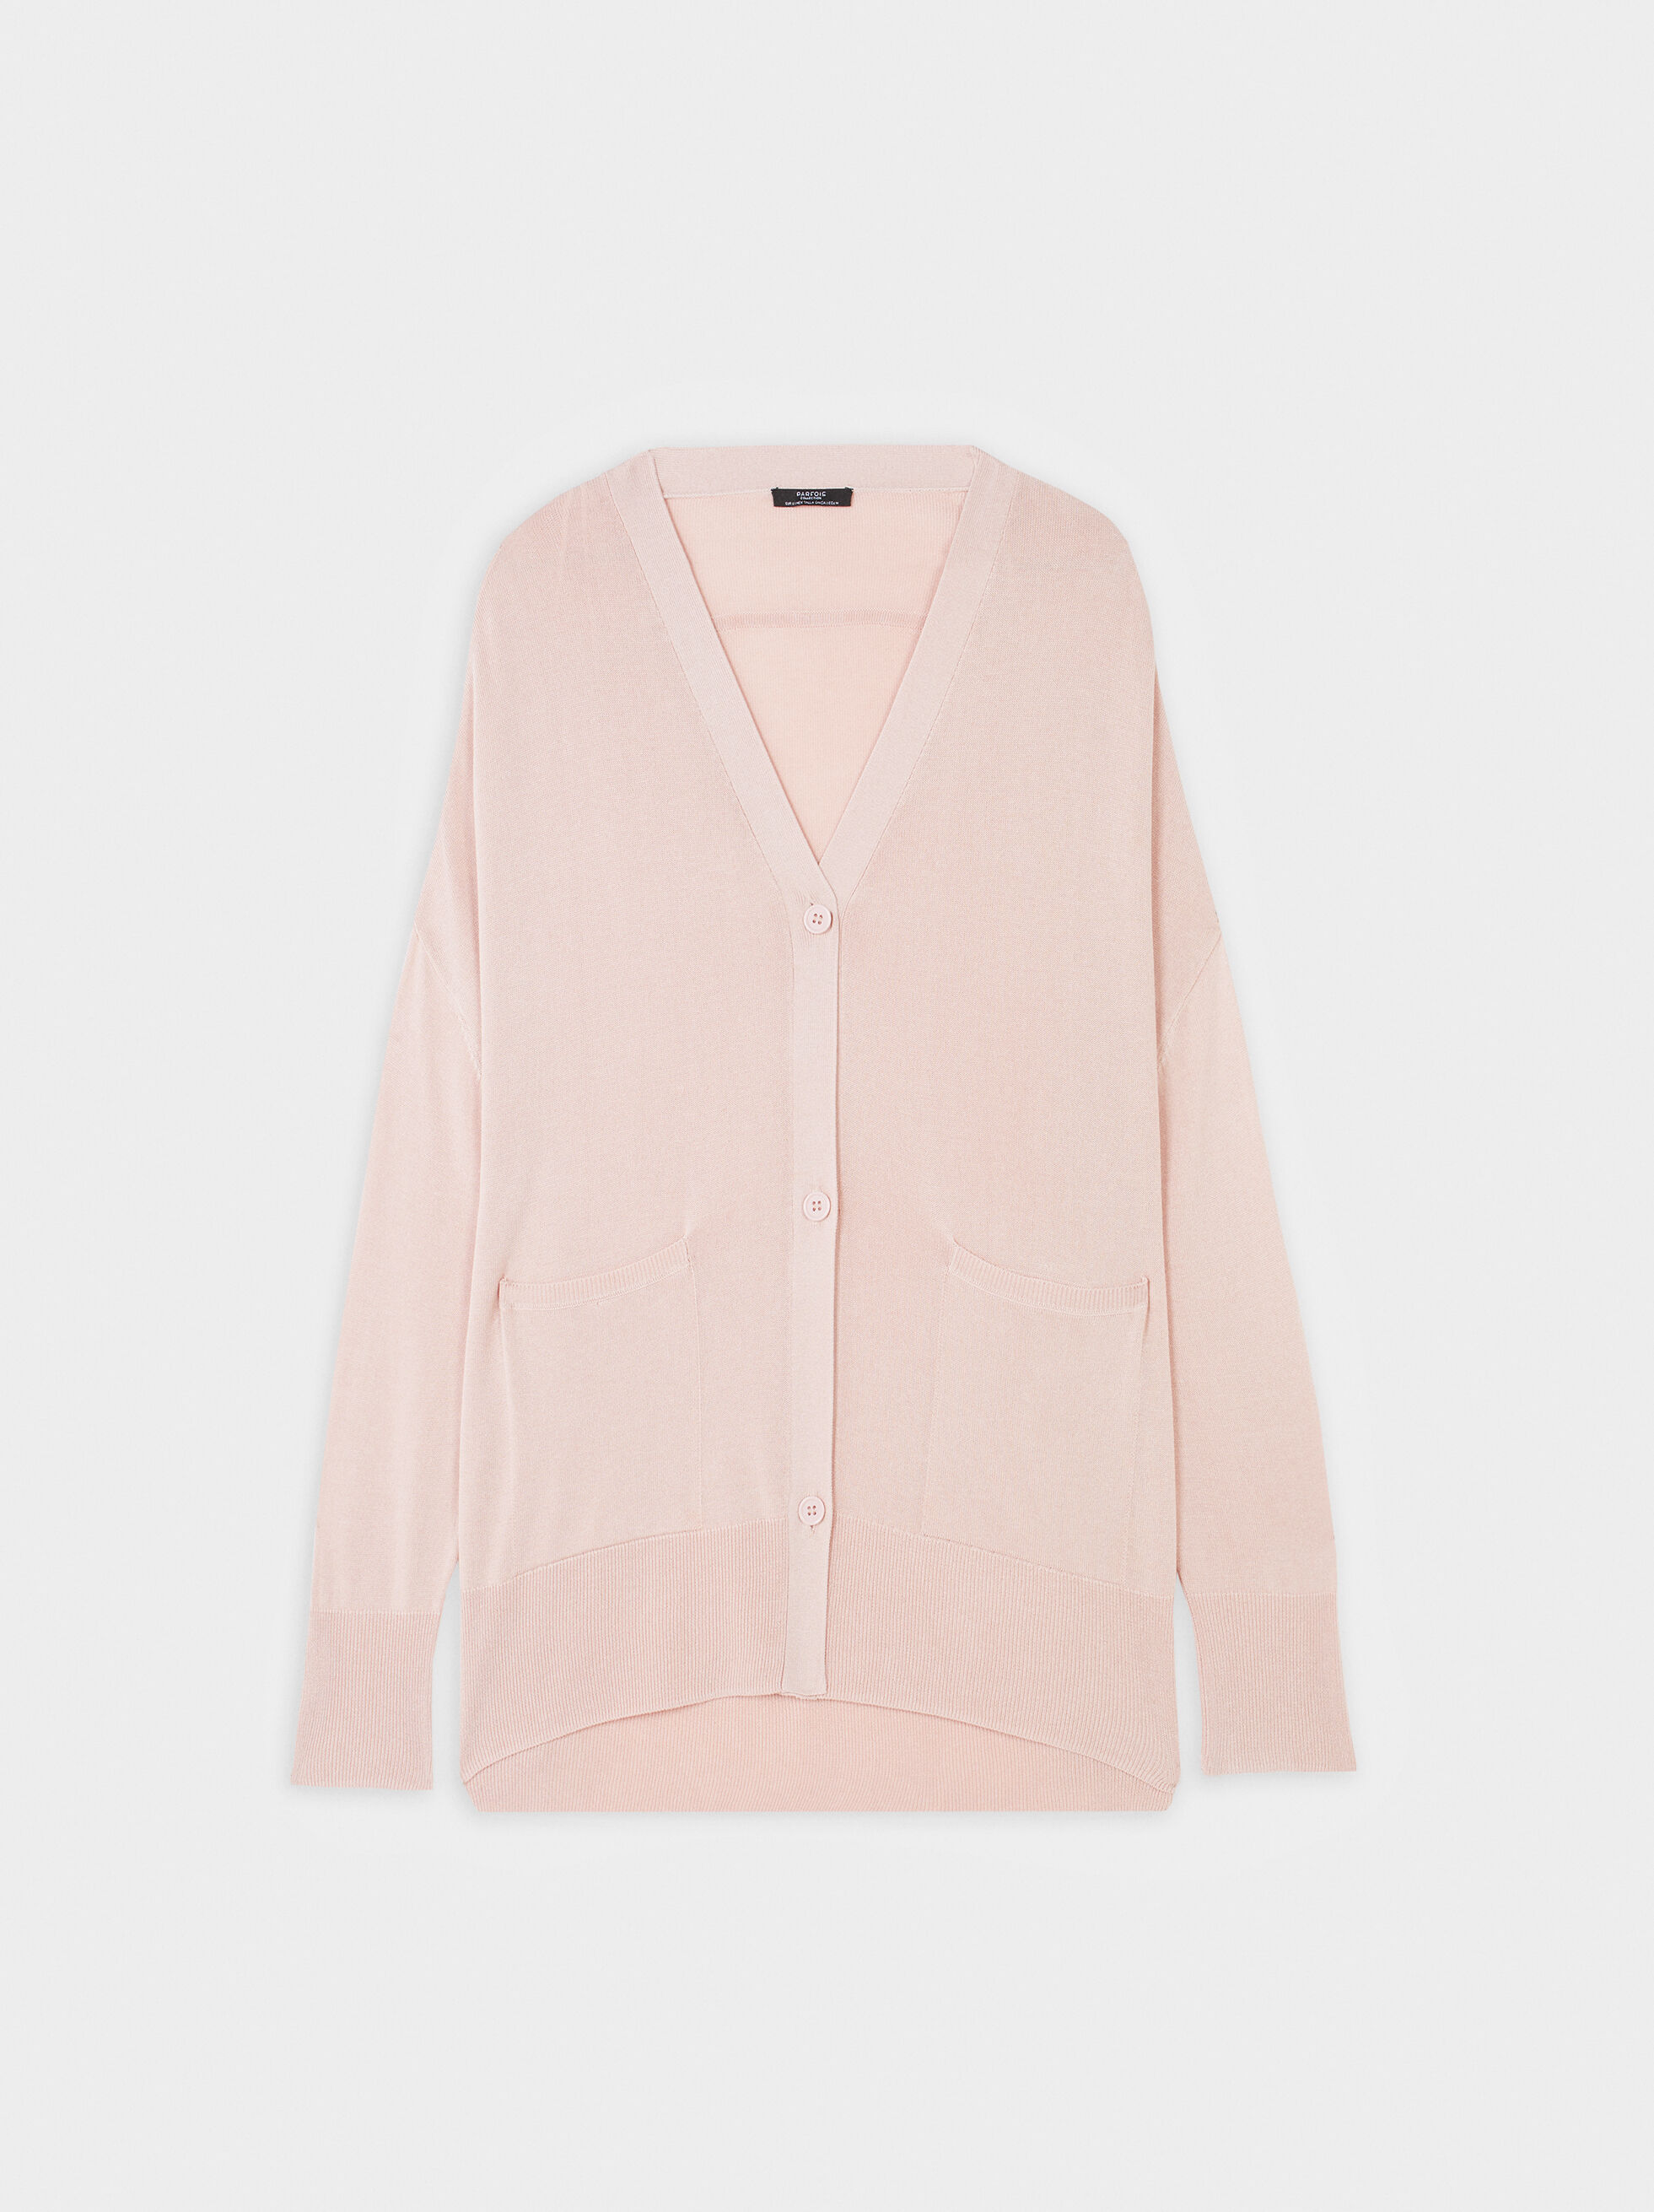 Knit Cardigan, Pink, hi-res